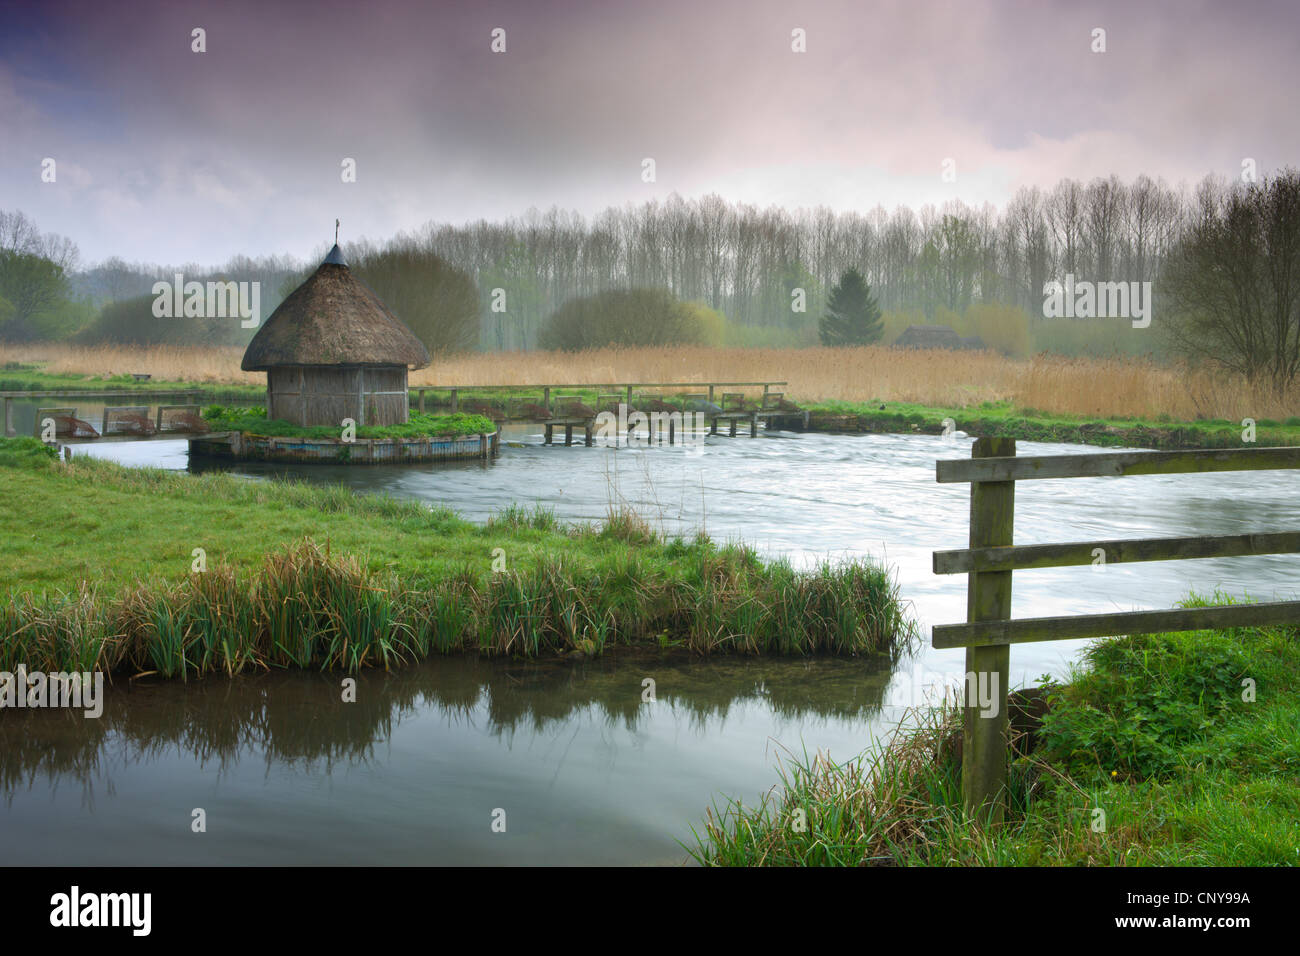 Thatched fisherman's hut and eel traps spanning the River Test near Leckford, Hampshire, England. Spring (April) - Stock Image